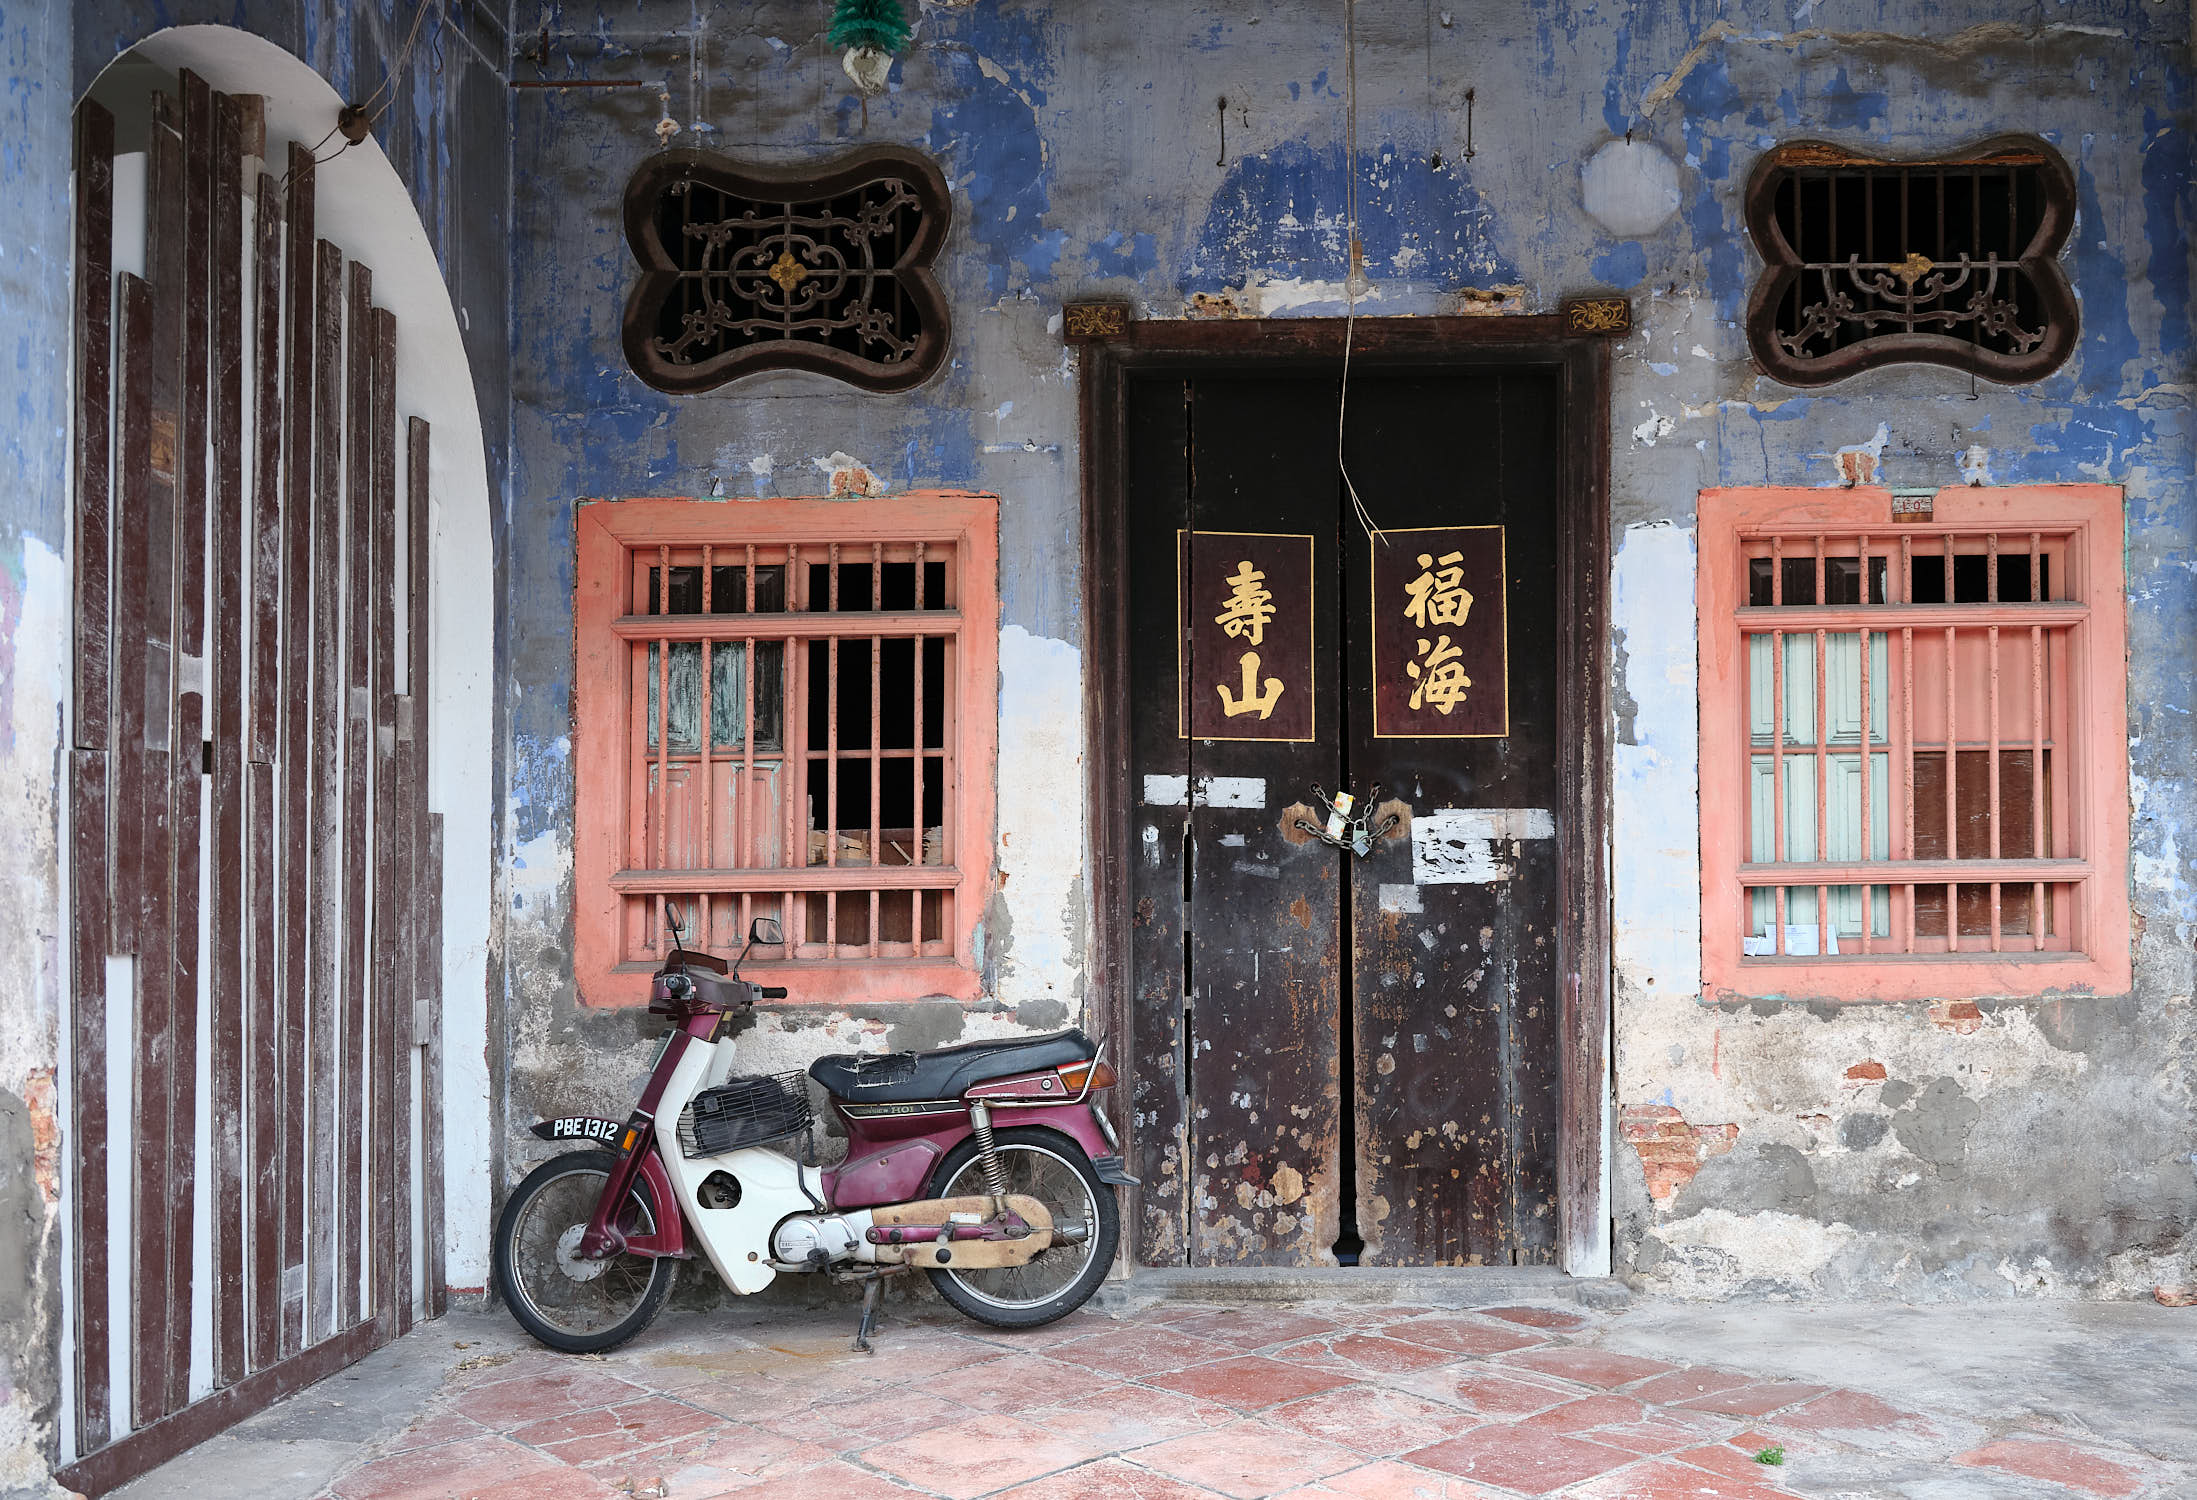 My favourite door in George Town